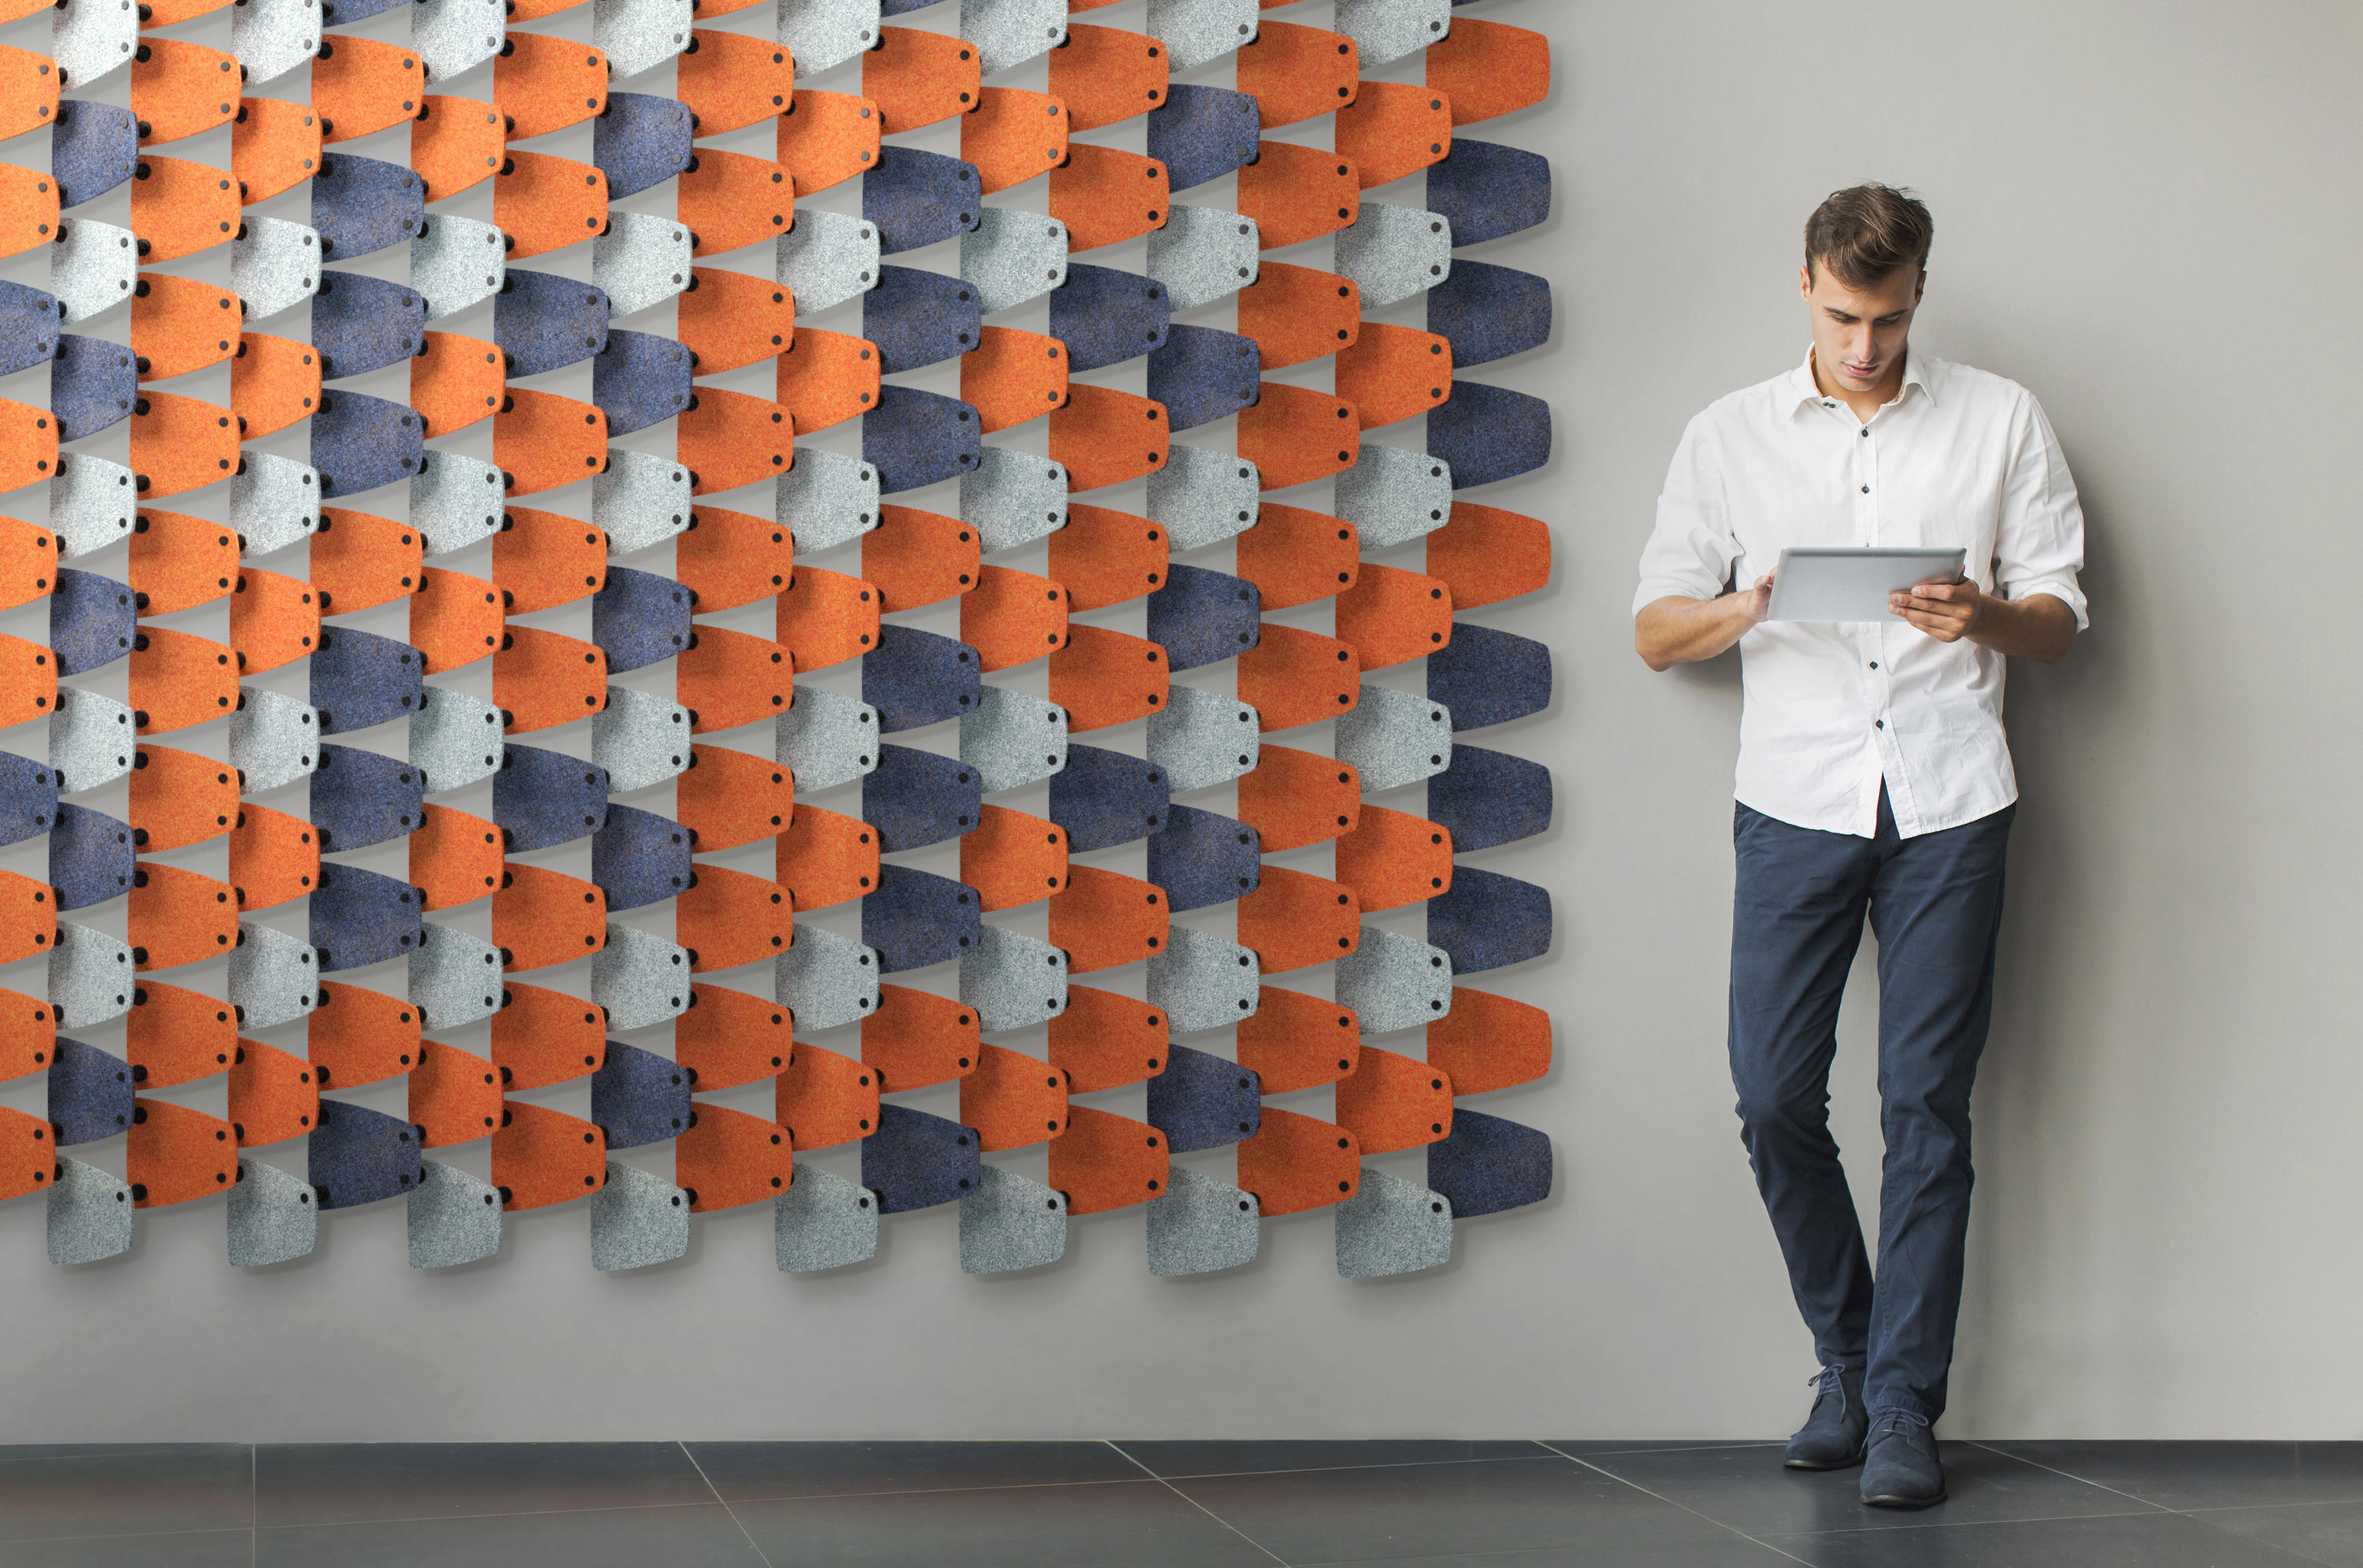 Haptic Sound Absorbing Architectural Systems From